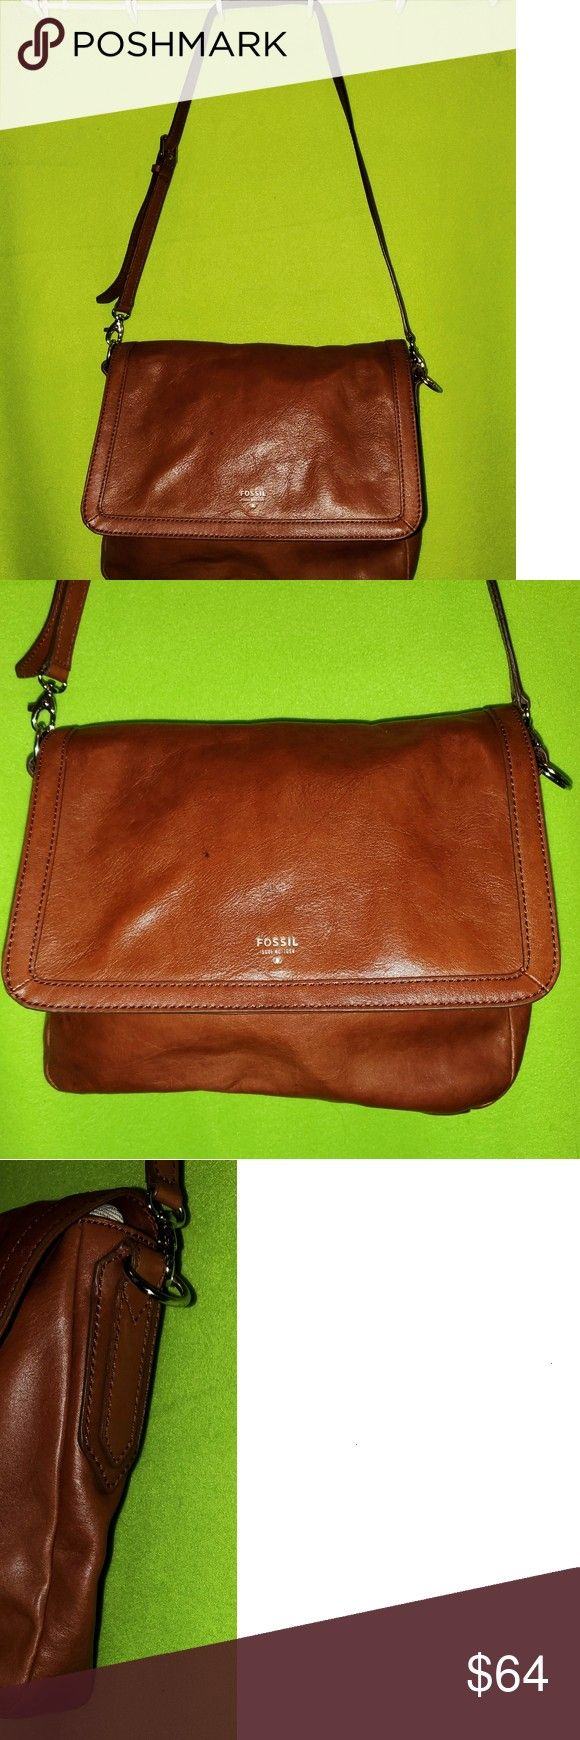 just added this listing on Poshmark: Fossil Tan Leather Sydney Flap Shoulder Purse.I just added this listing on Poshmark: Fossil Tan Leather Sydney Flap Shoulder Purse.  14